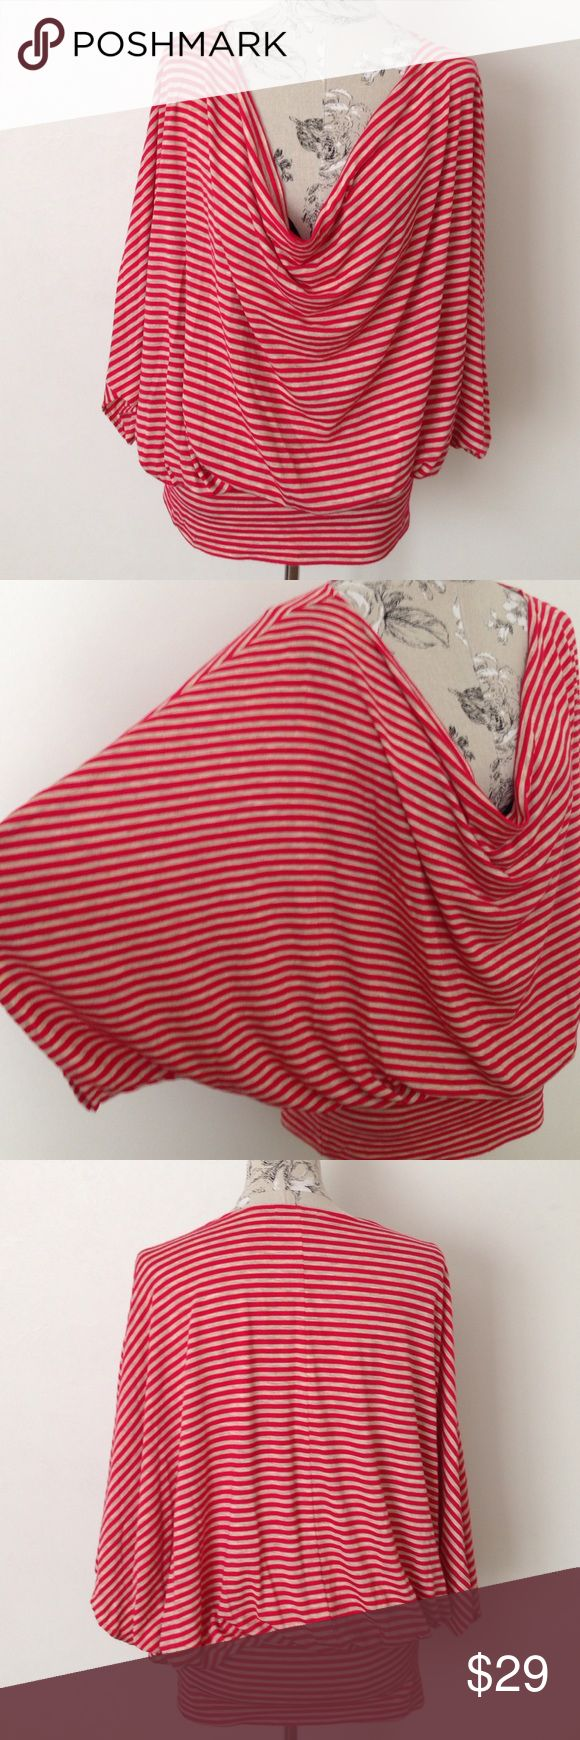 "Cha Cha Vente Stripe Batwing Top XL Excellent condition. Batwing. Wide band 6"" at bottom. cha cha vente Tops"